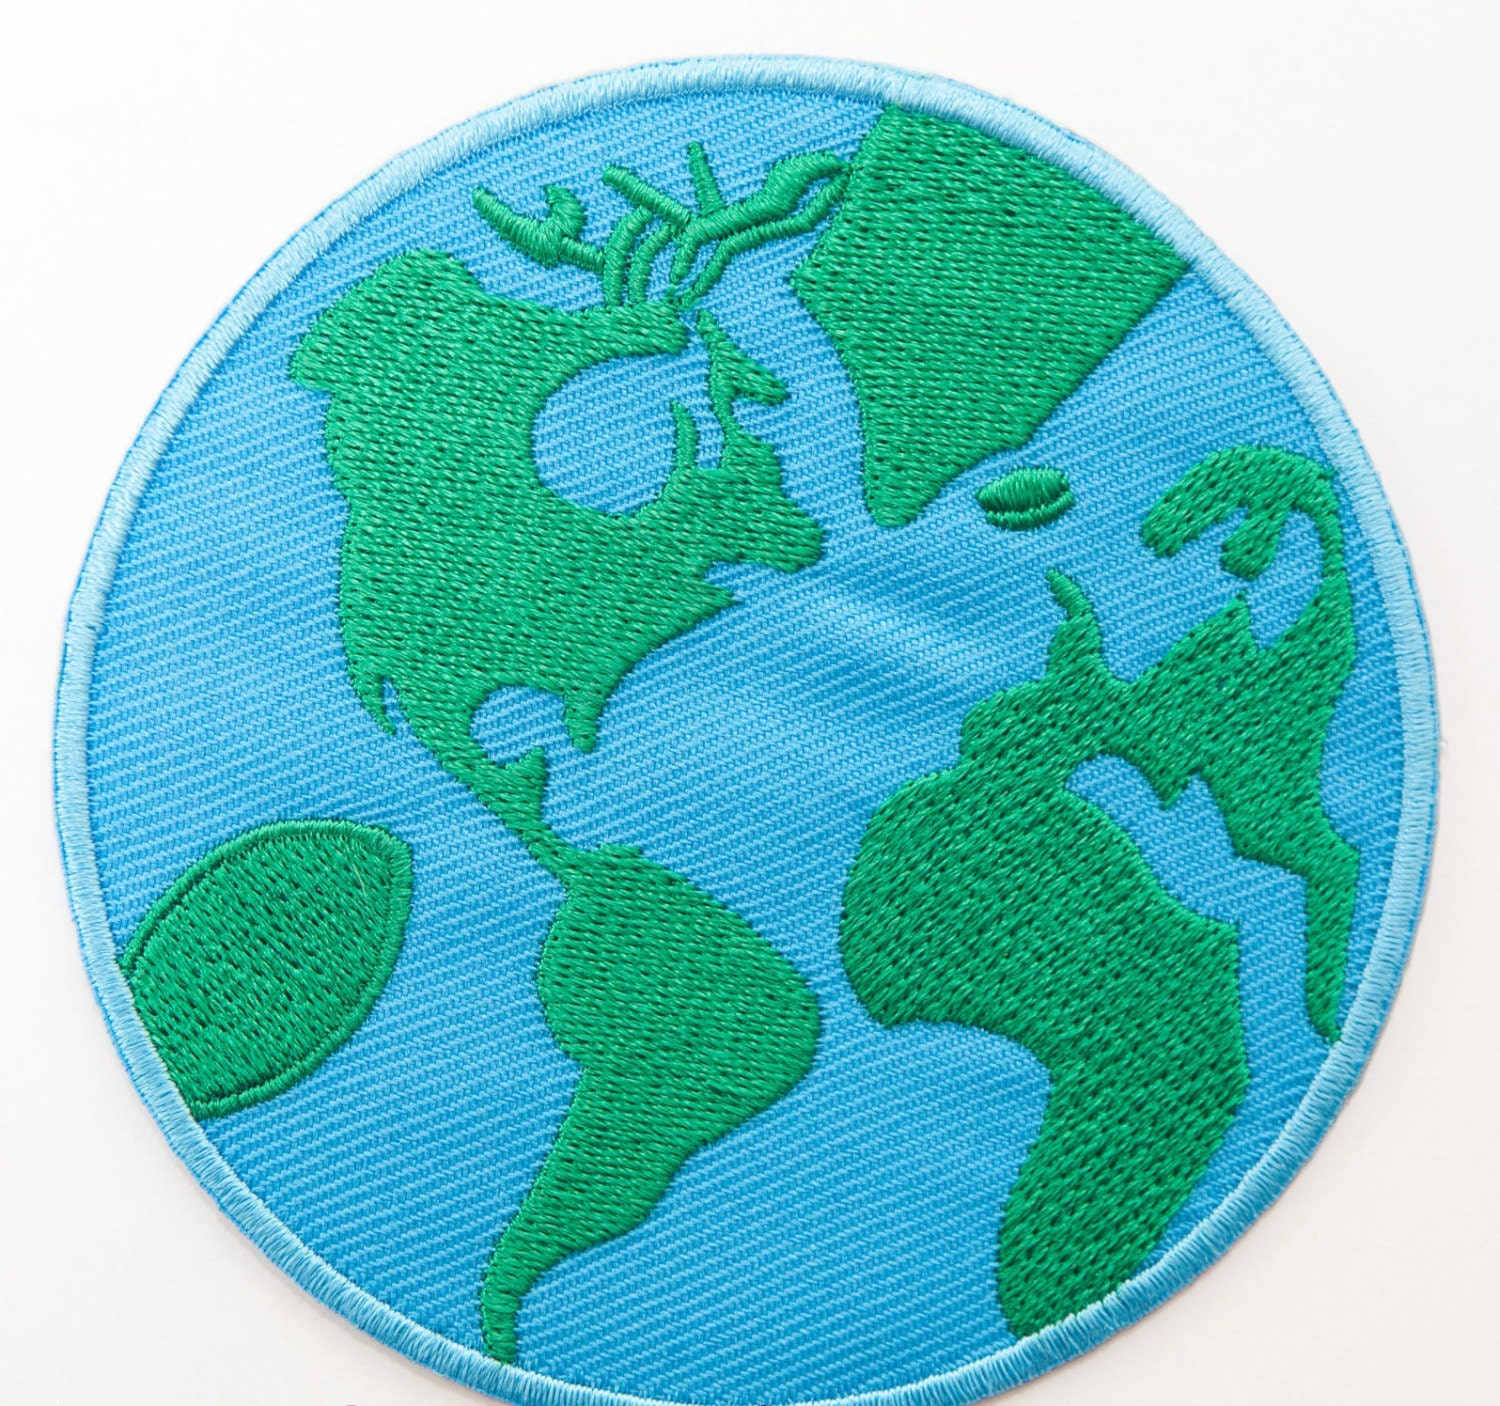 Areth i velcro patches